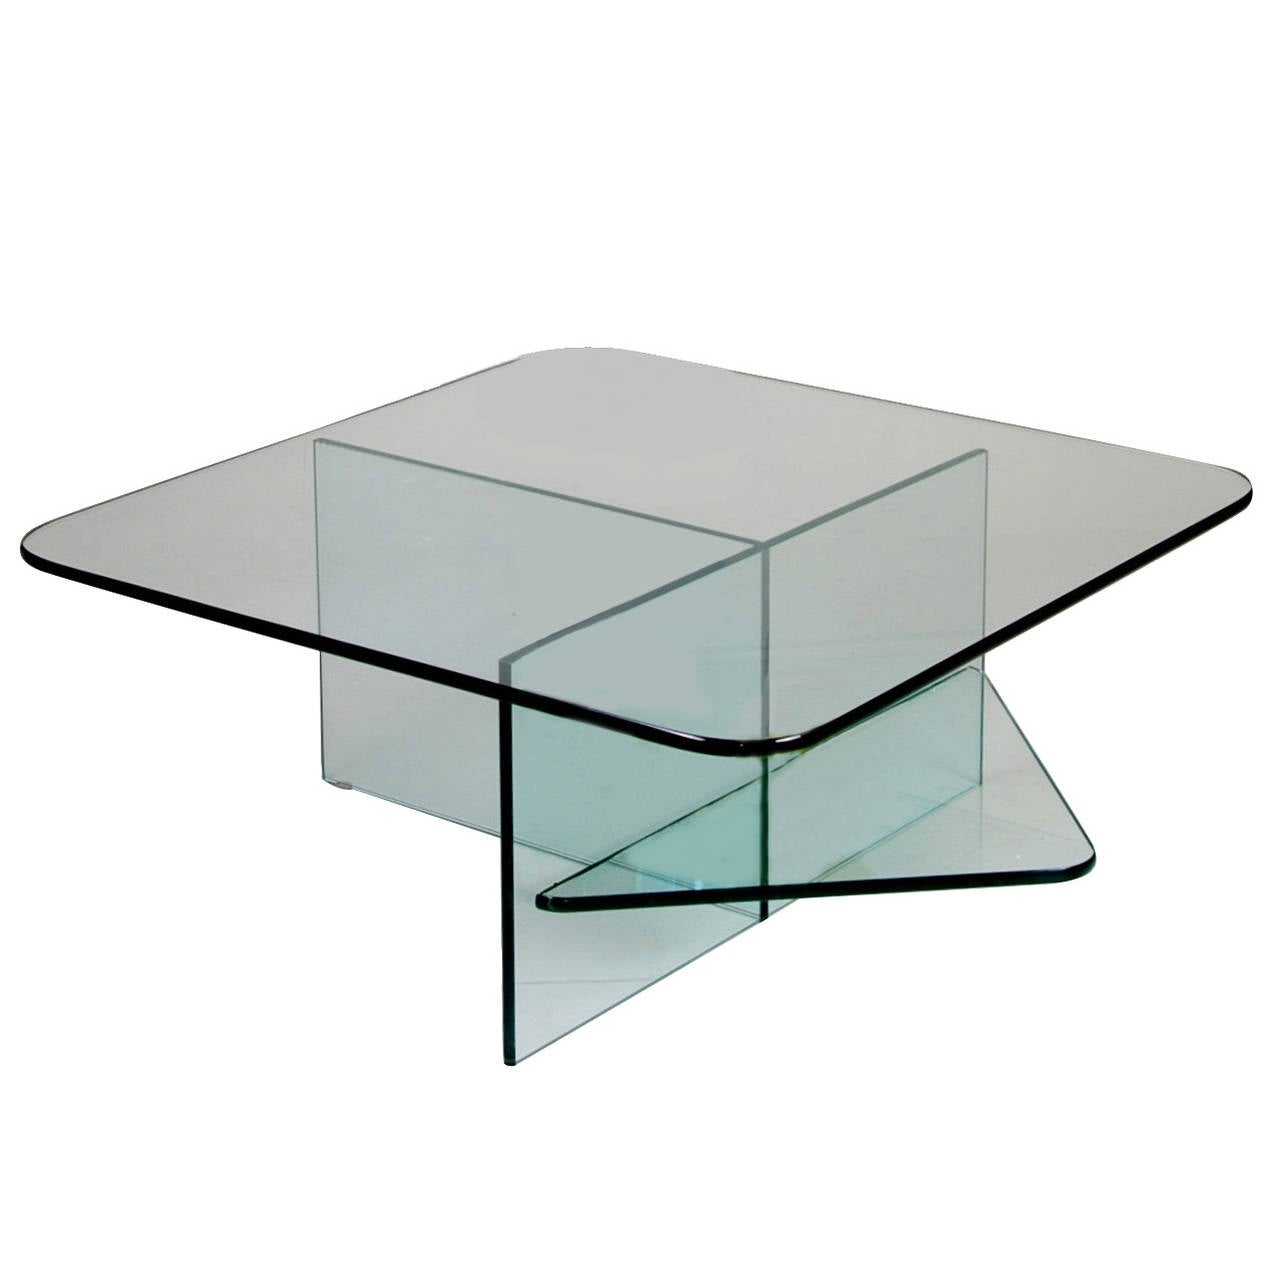 memphis style modern square coffee table at stdibs - memphis style modern square coffee table